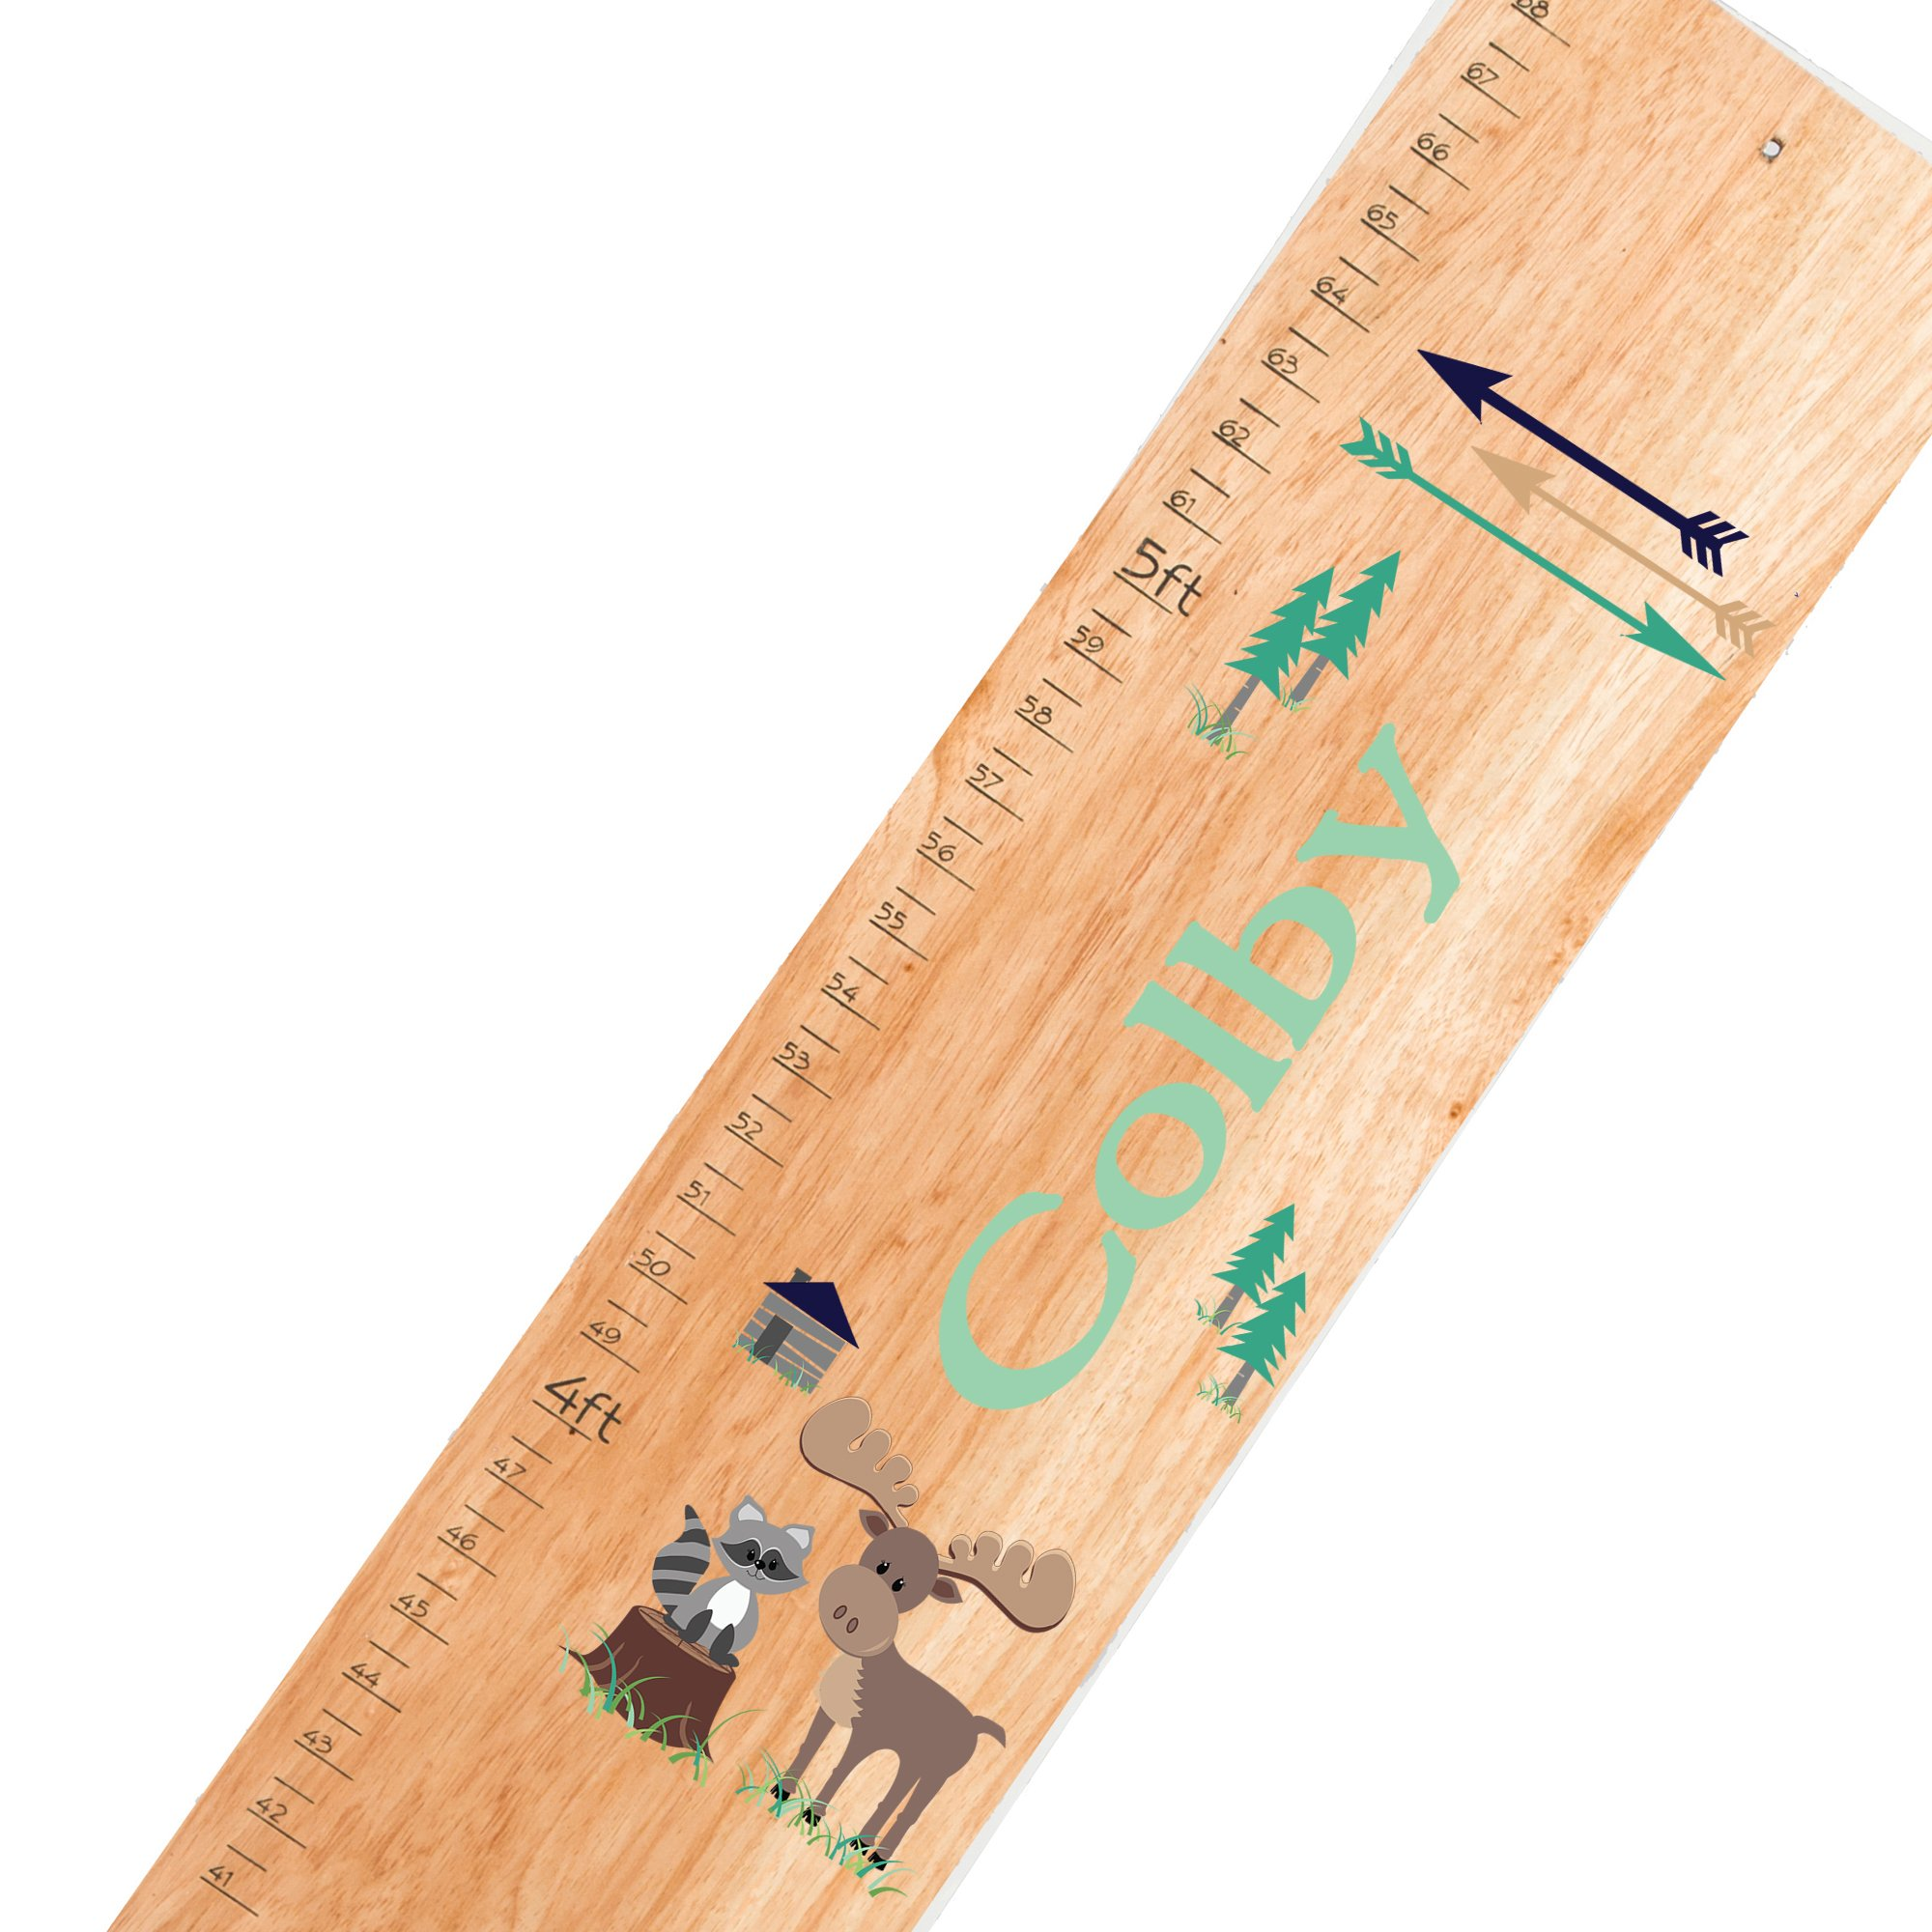 Personalized natural North Woodland childrens wooden growth chart